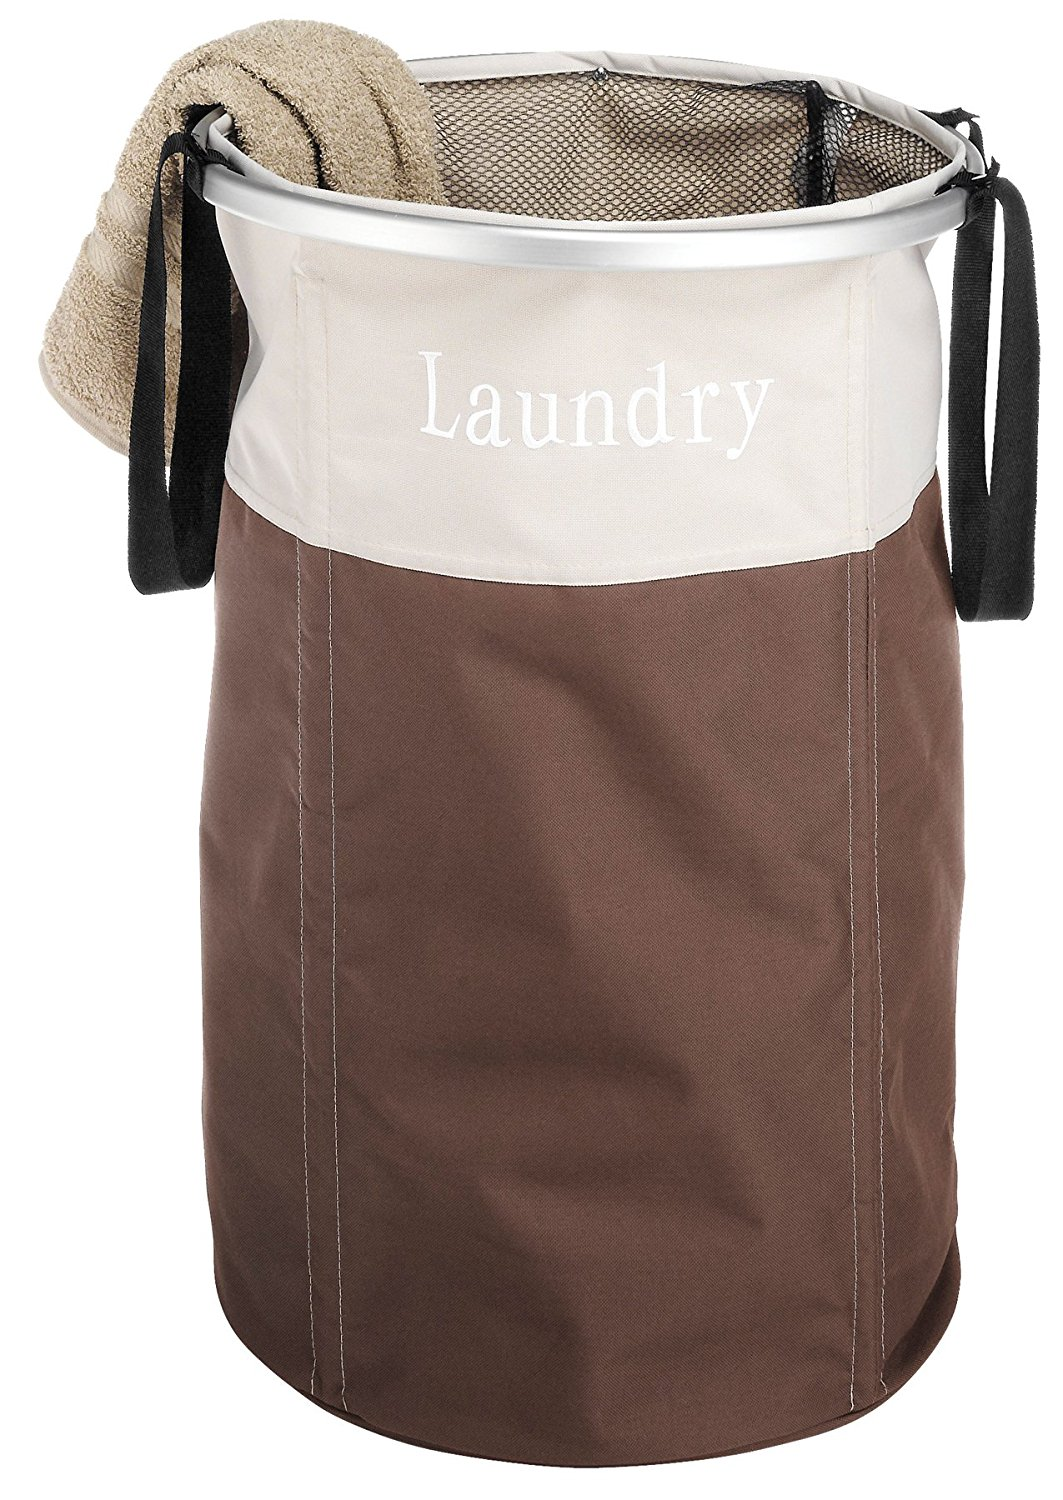 Easycare Round Laundry Hamper, Java, Ship from USA,Brand Whitmor by